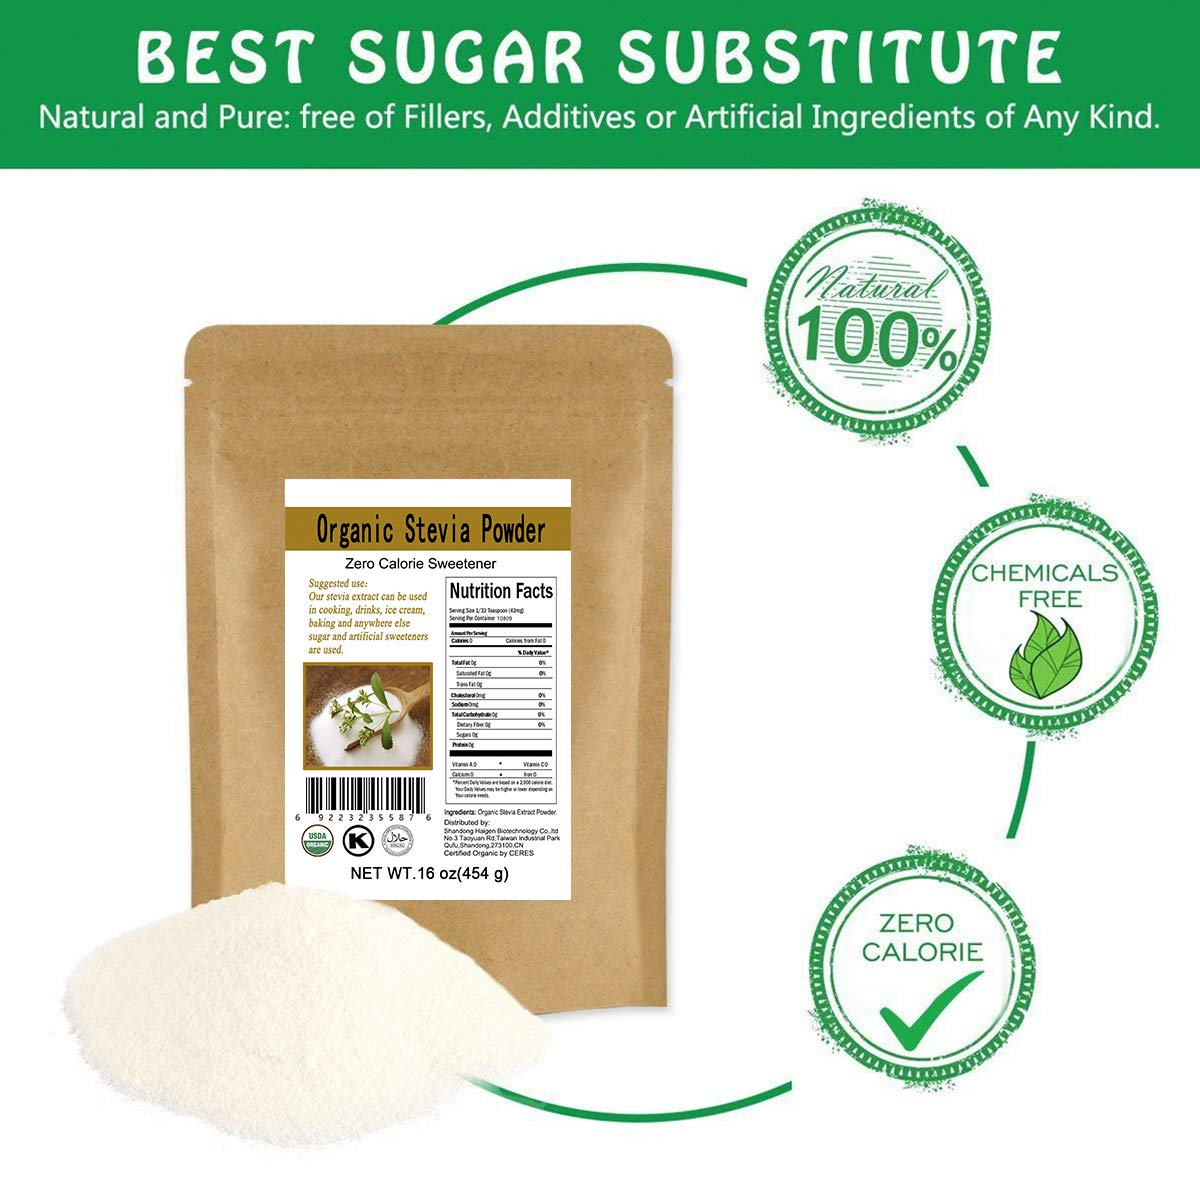 CCnature Organic Stevia Powder Extract Natural Sweetener Zero Calorie Sugar Substitute 16oz by CCnature (Image #2)